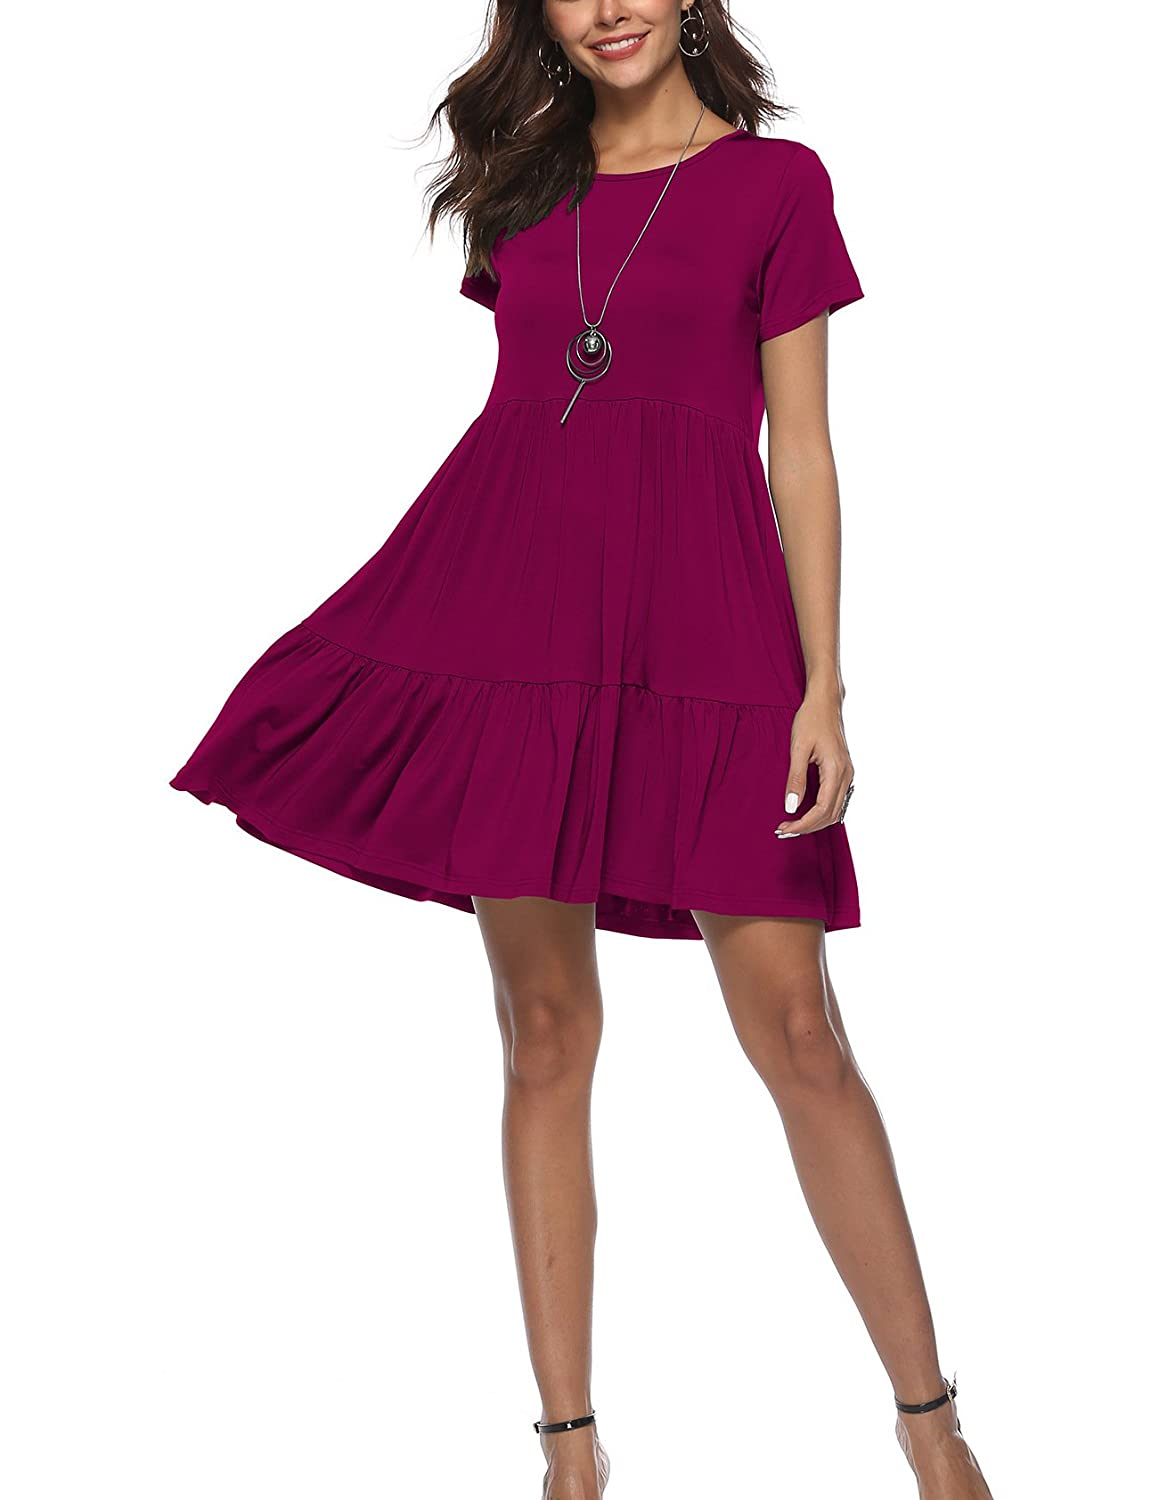 b4a9071b958 ... and comfortable to touch and wear. This classic cute A line dress  features a layered tiered cut